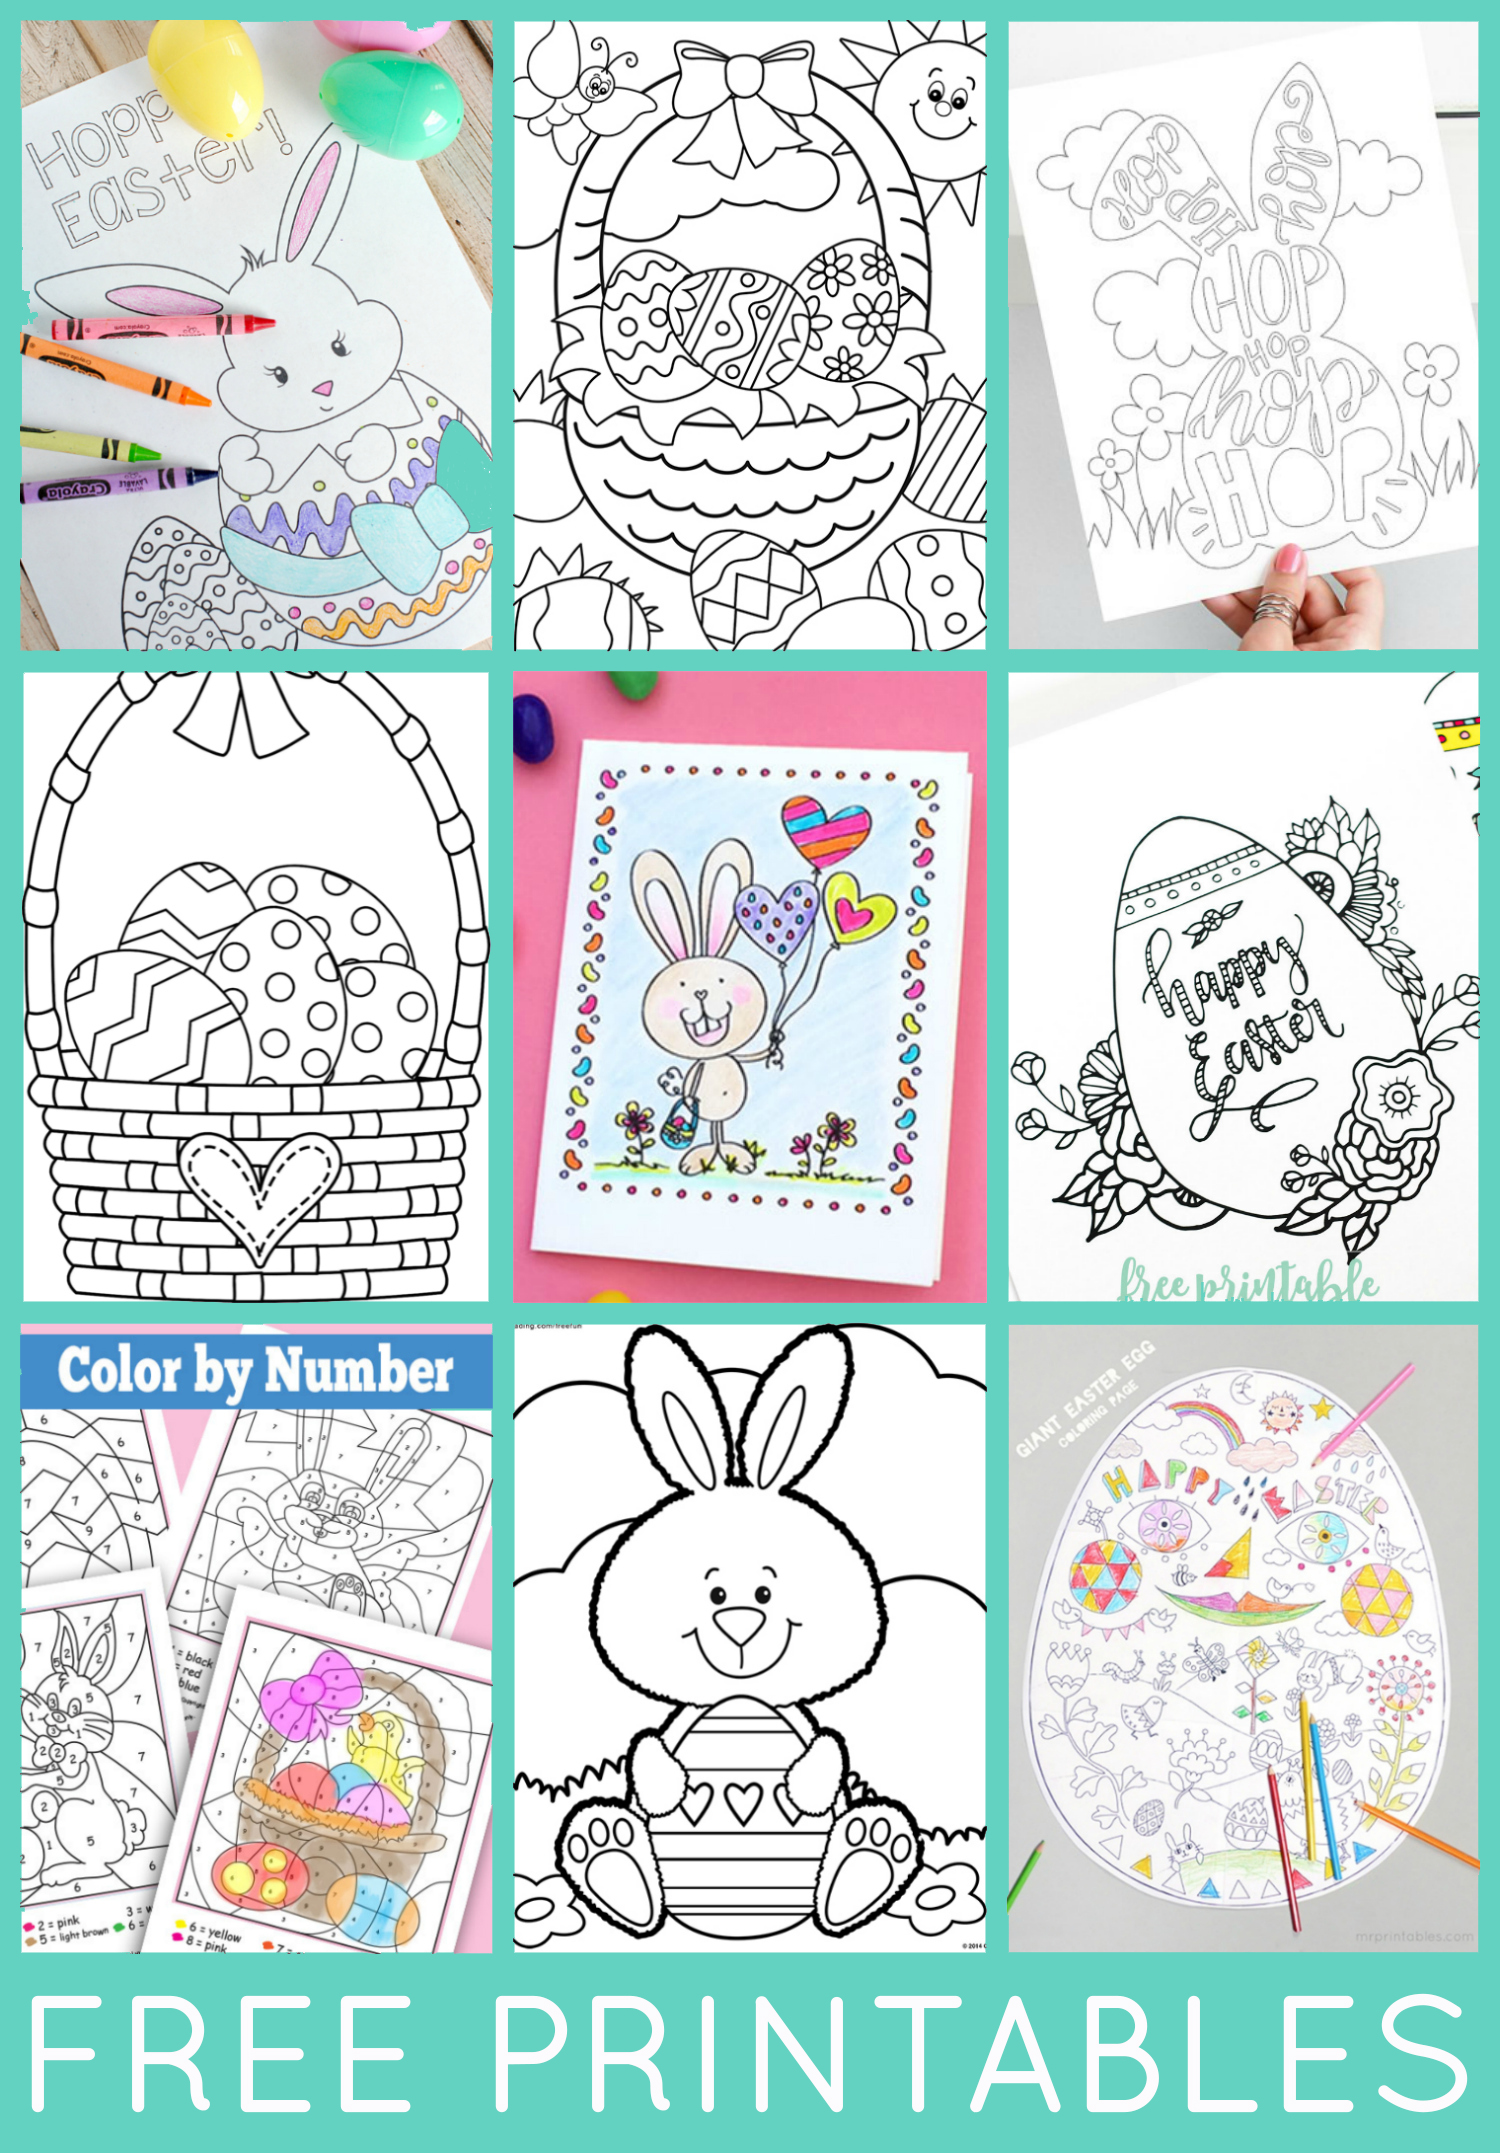 Great Free Printable Easter Coloring Pages Are Fun For Kids Of All Ages! Easter  Egg Coloring